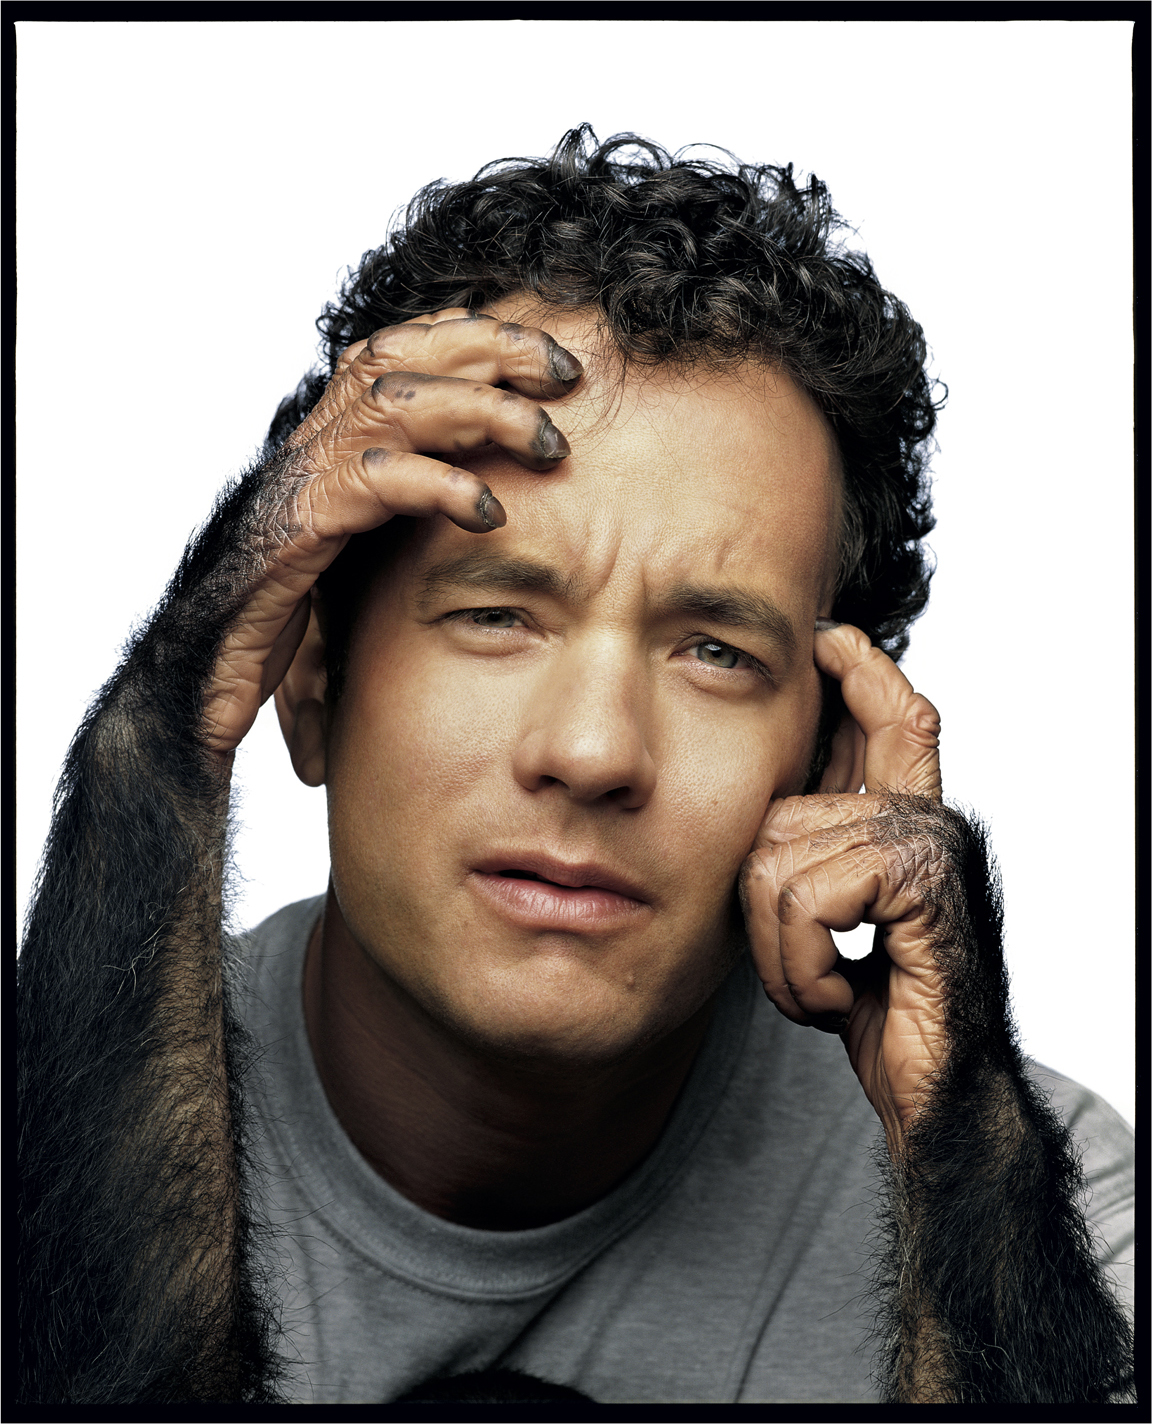 Tom Hanks, Los Angeles, CA, 1994 photograph by Mark Seliger